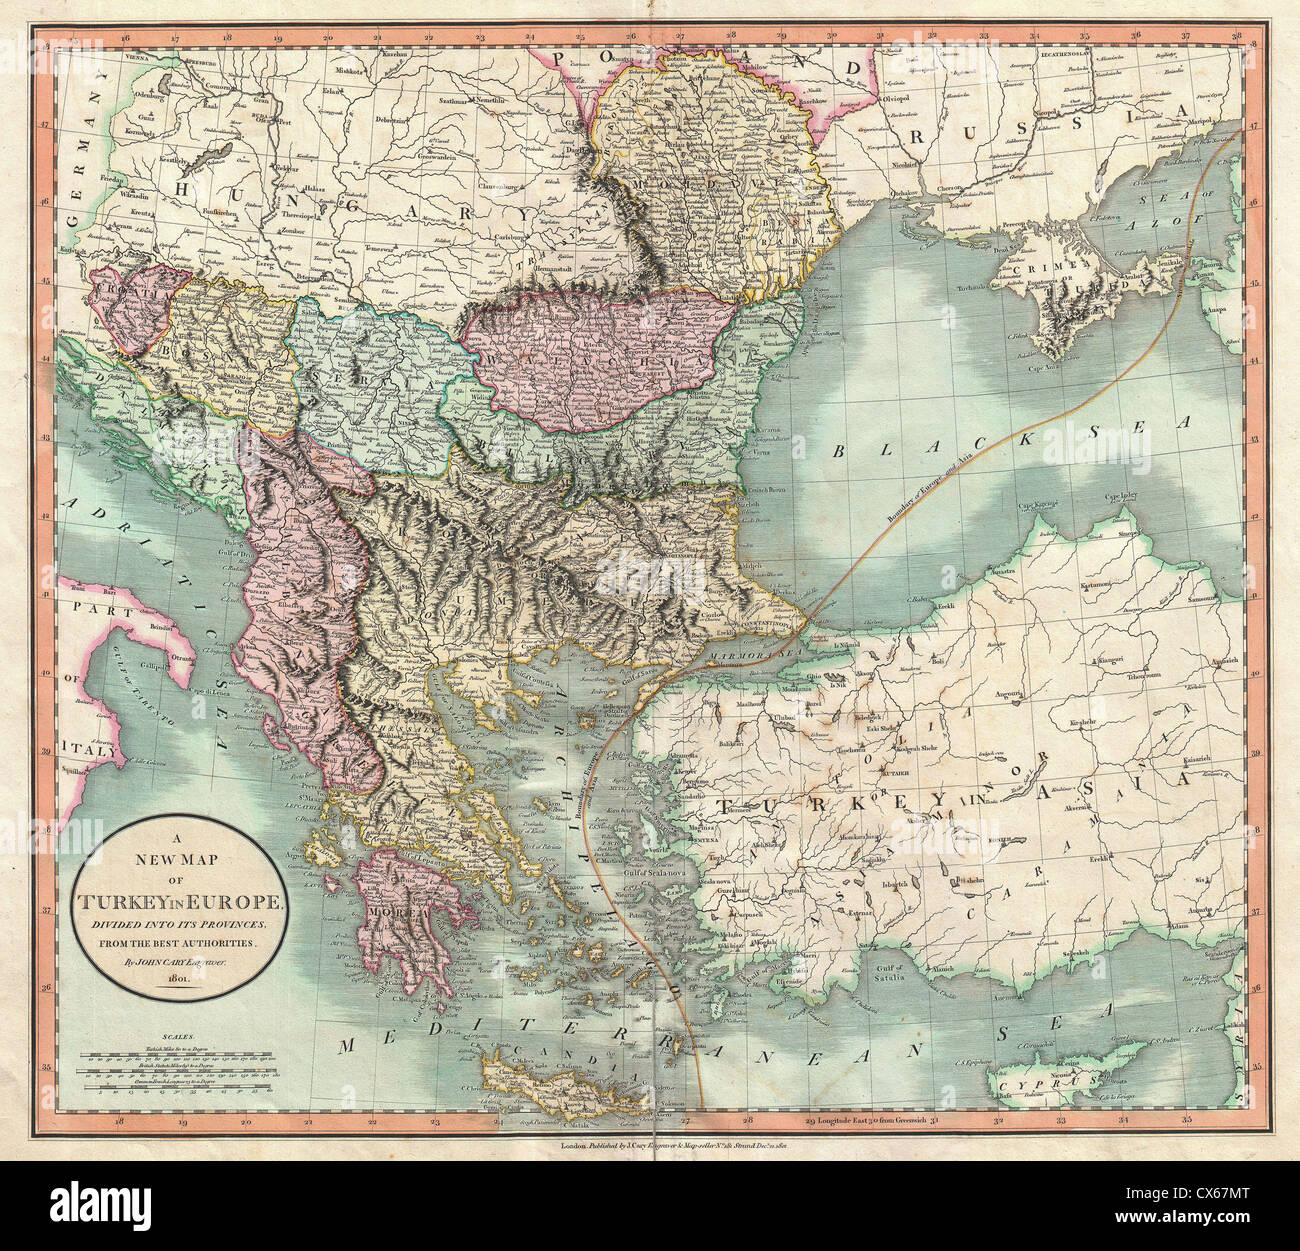 Map of greece and turkey stock photos map of greece and turkey 1801 cary map of turkey in europe greece and the balkan stock image gumiabroncs Images